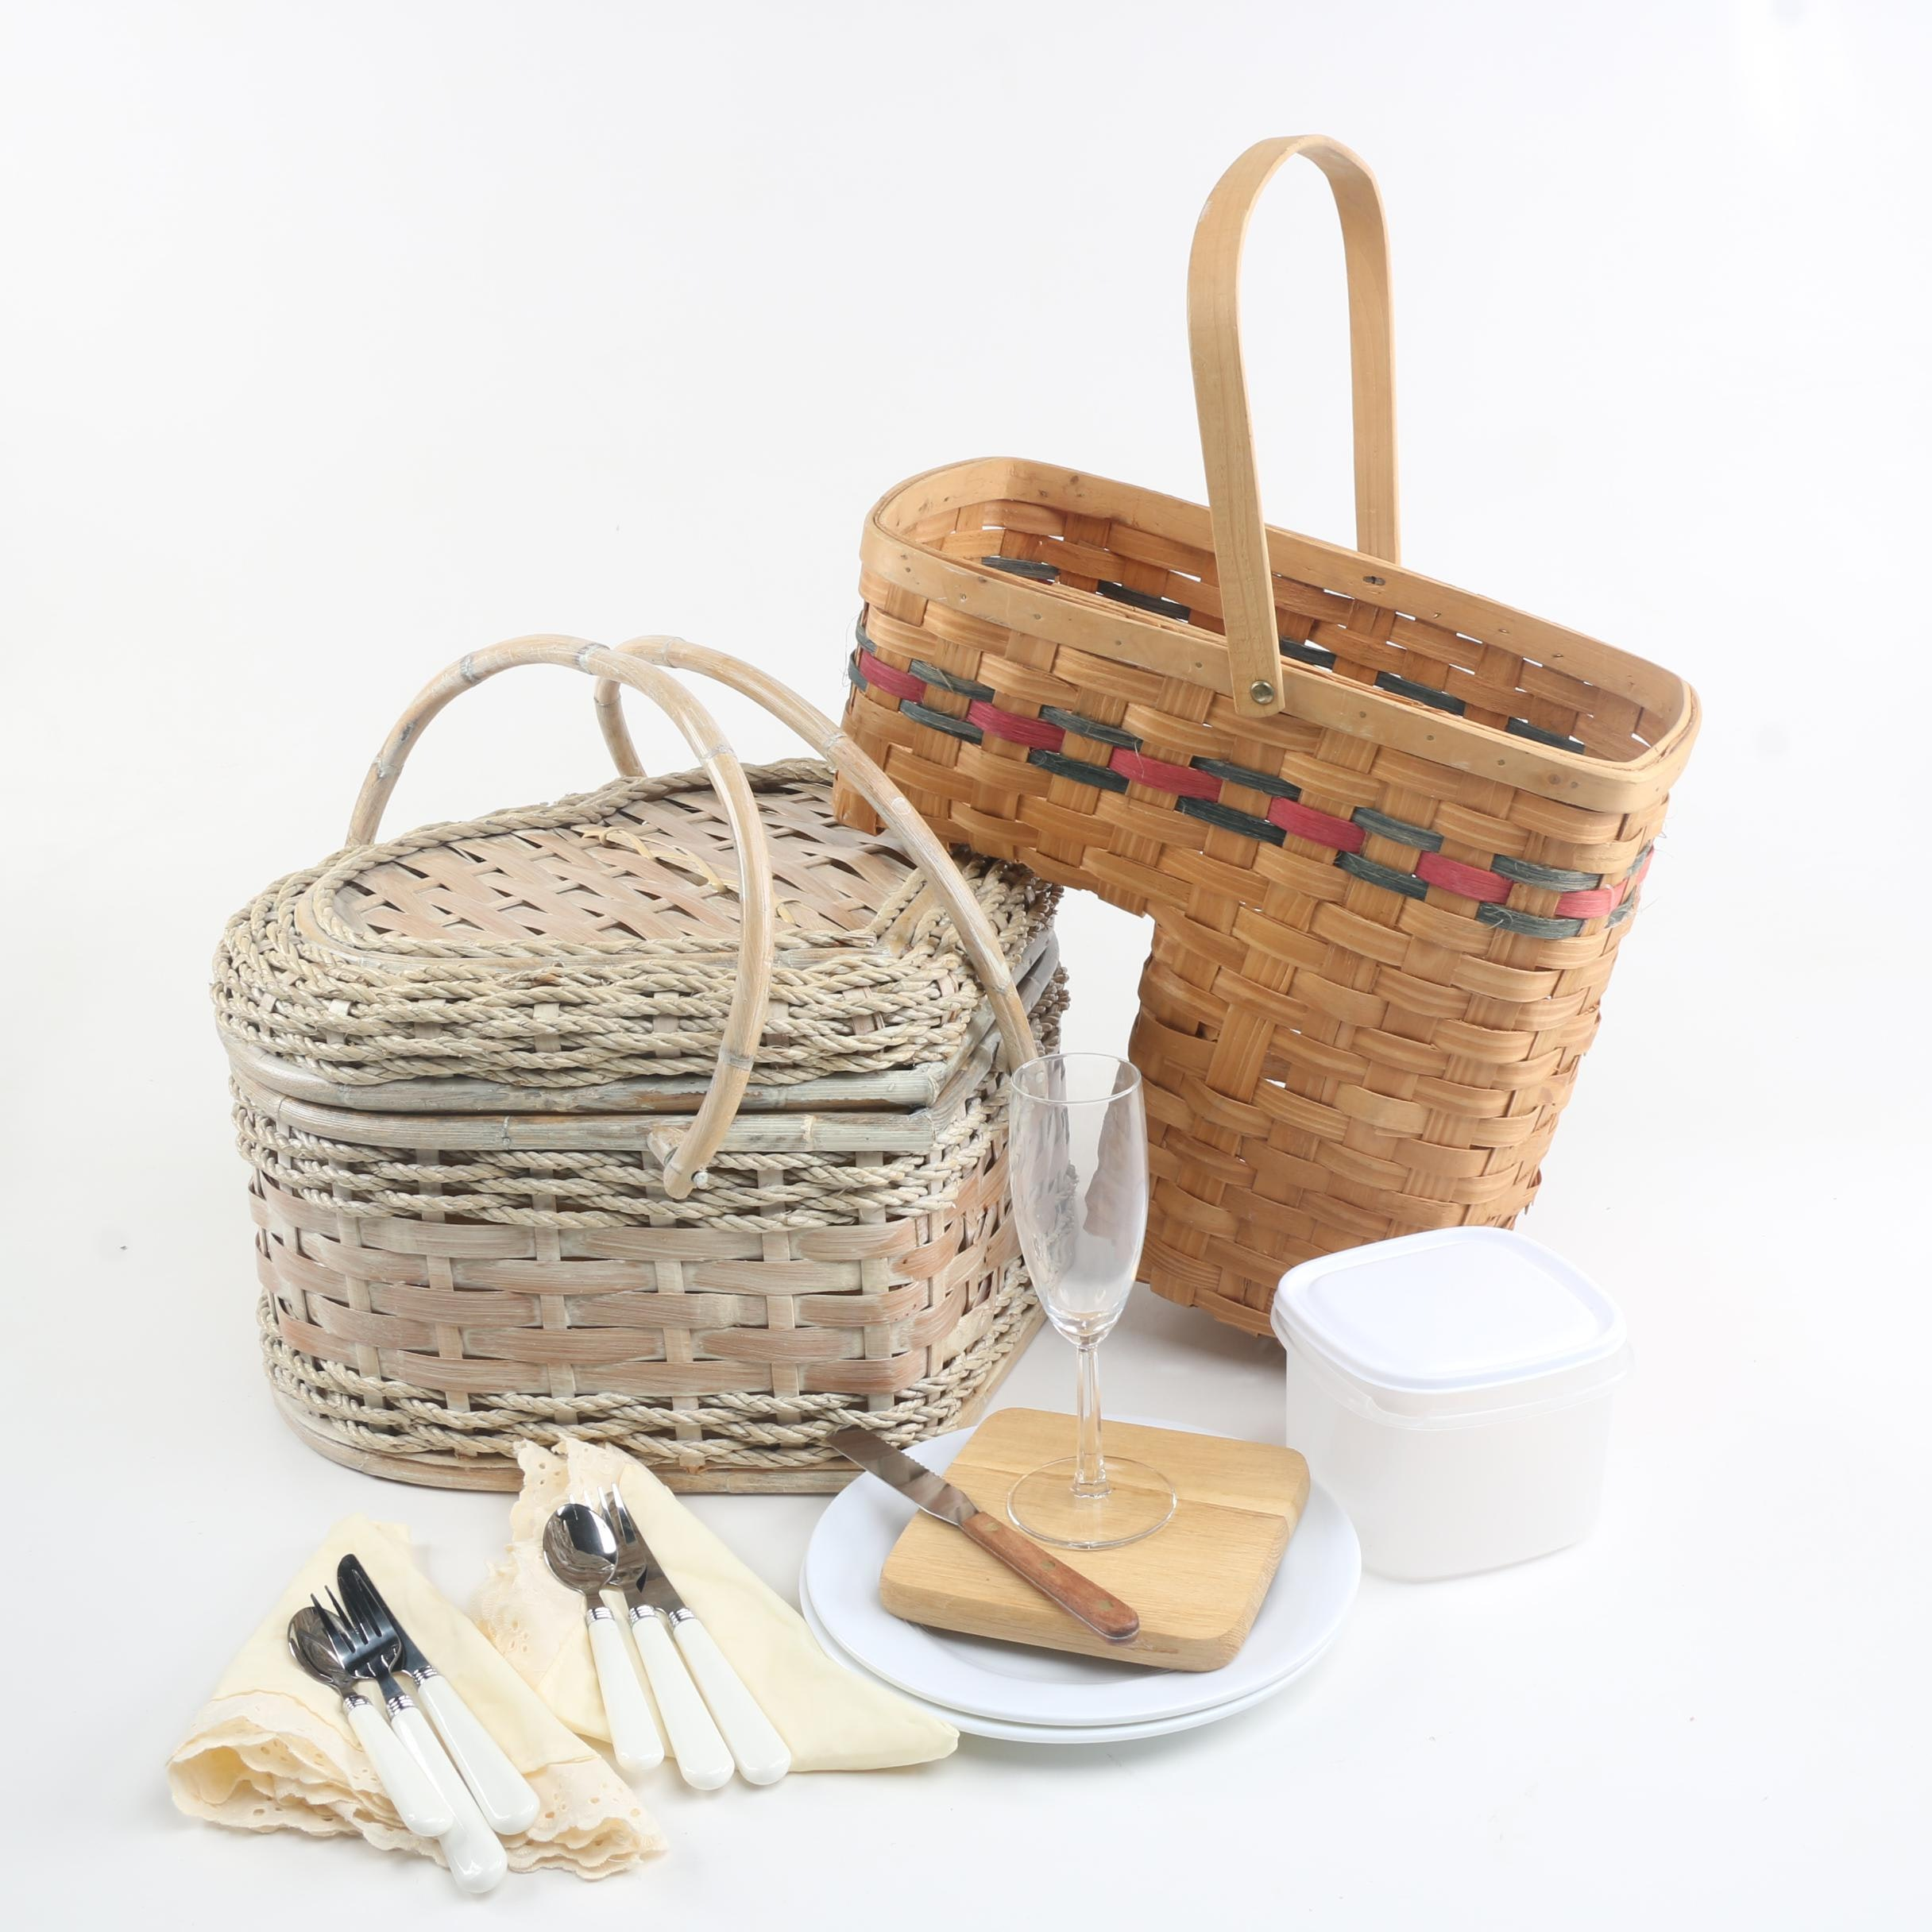 Picnic Basket and Stairway Basket